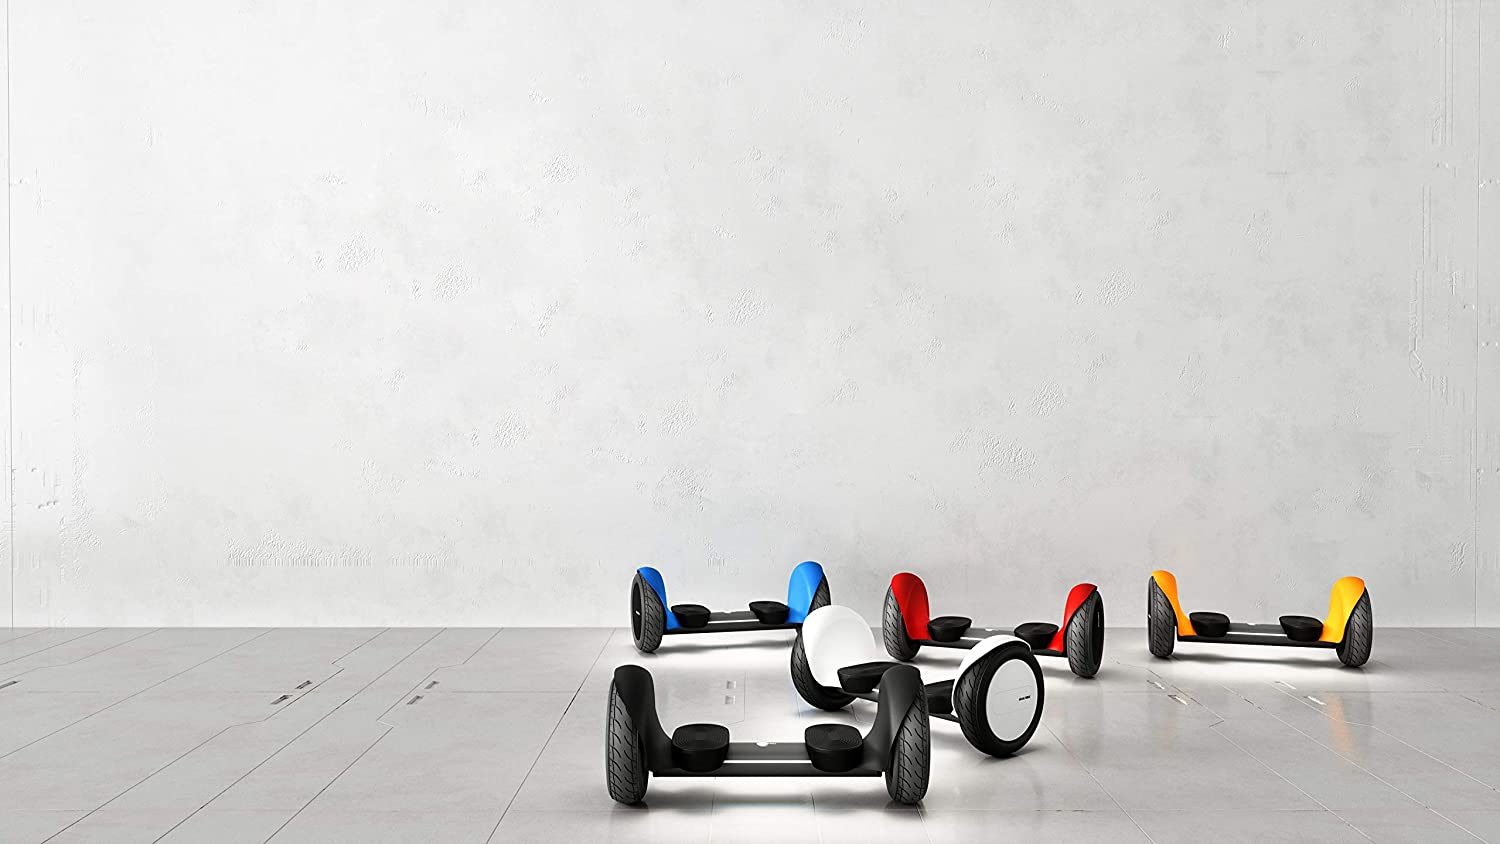 Wheelheels Balance Scooter, Hoverboard 'ALPHA OFFROAD' - 4